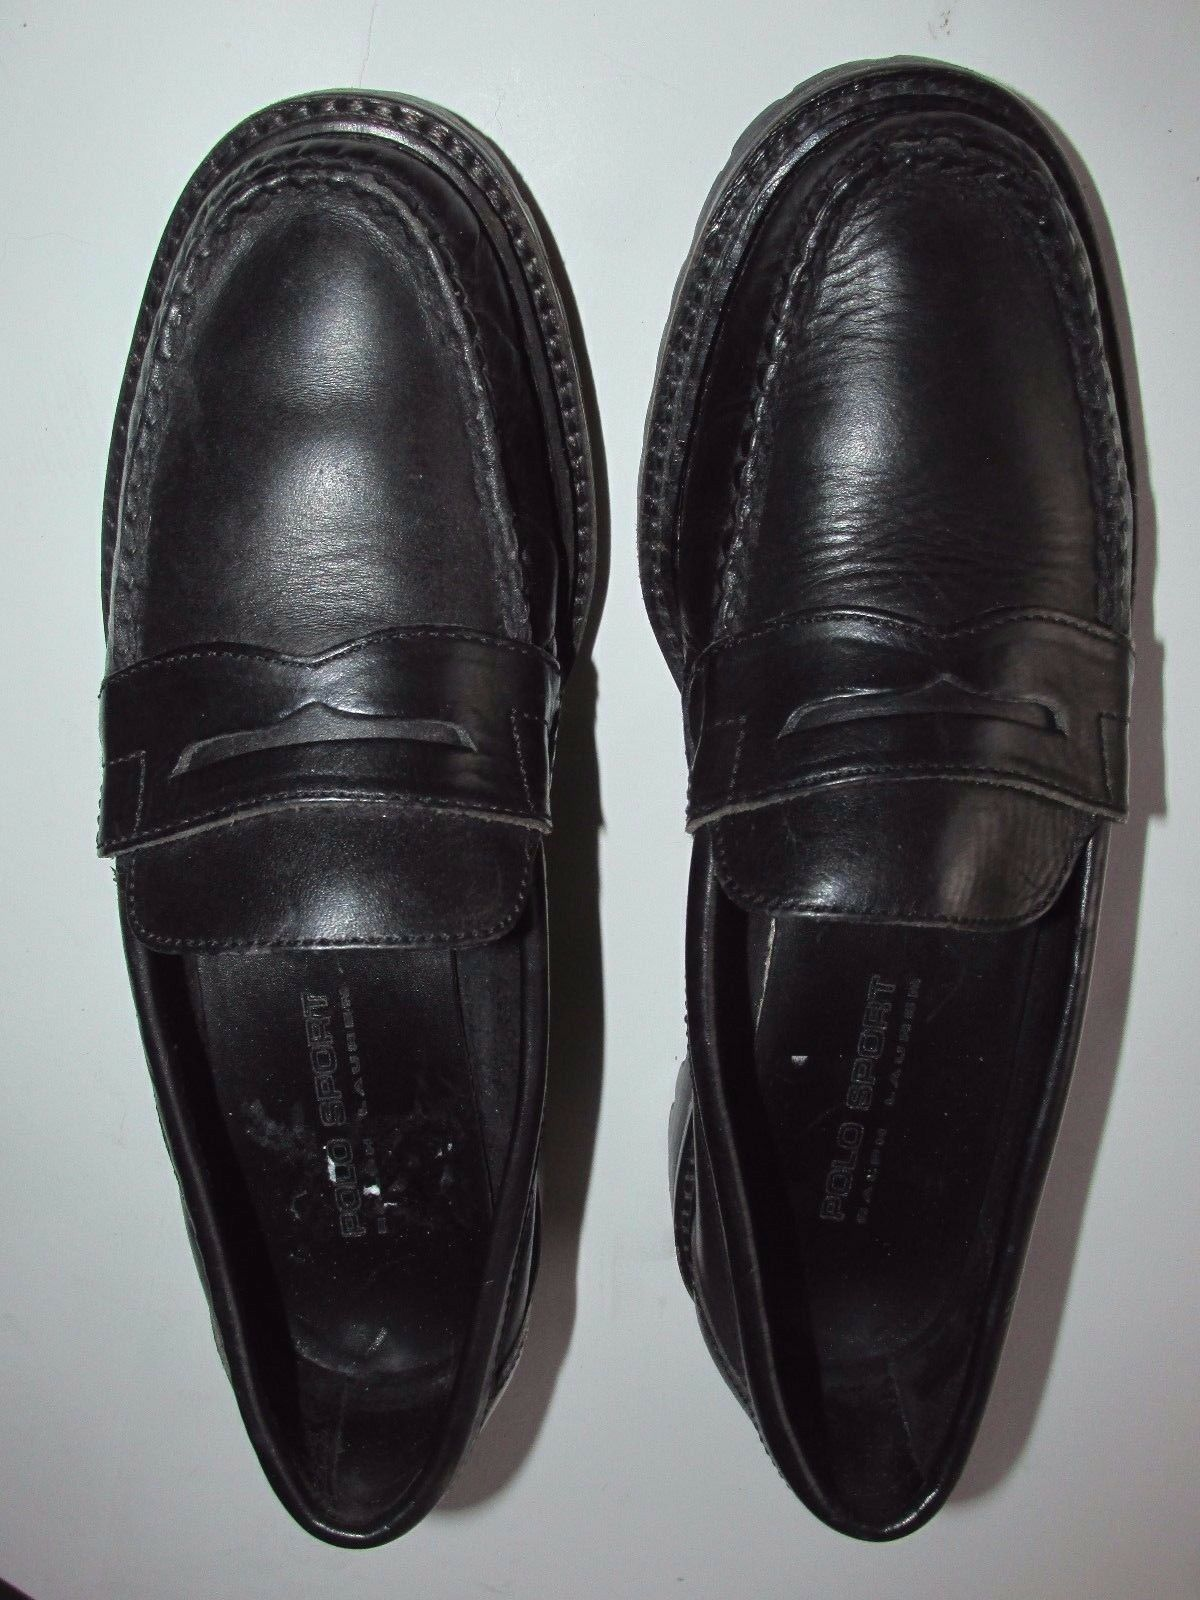 Polo Sport Ralph Lauren Black Classic Penny Loafer Slip On shoes Women's 7M